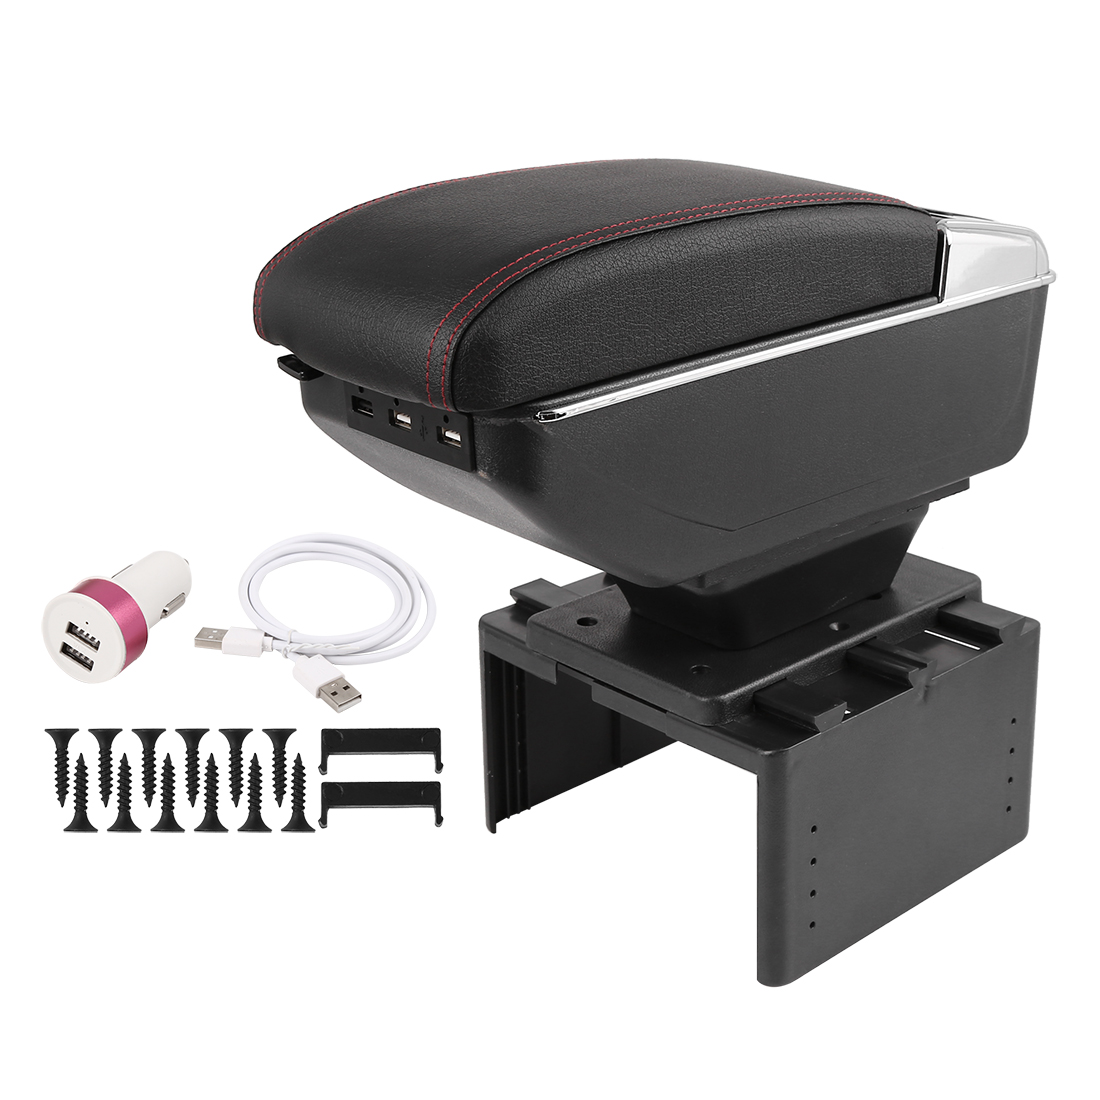 Chargeable Adjustable Double Storage Space Car Central Armrest Box w/ LED 7 USB